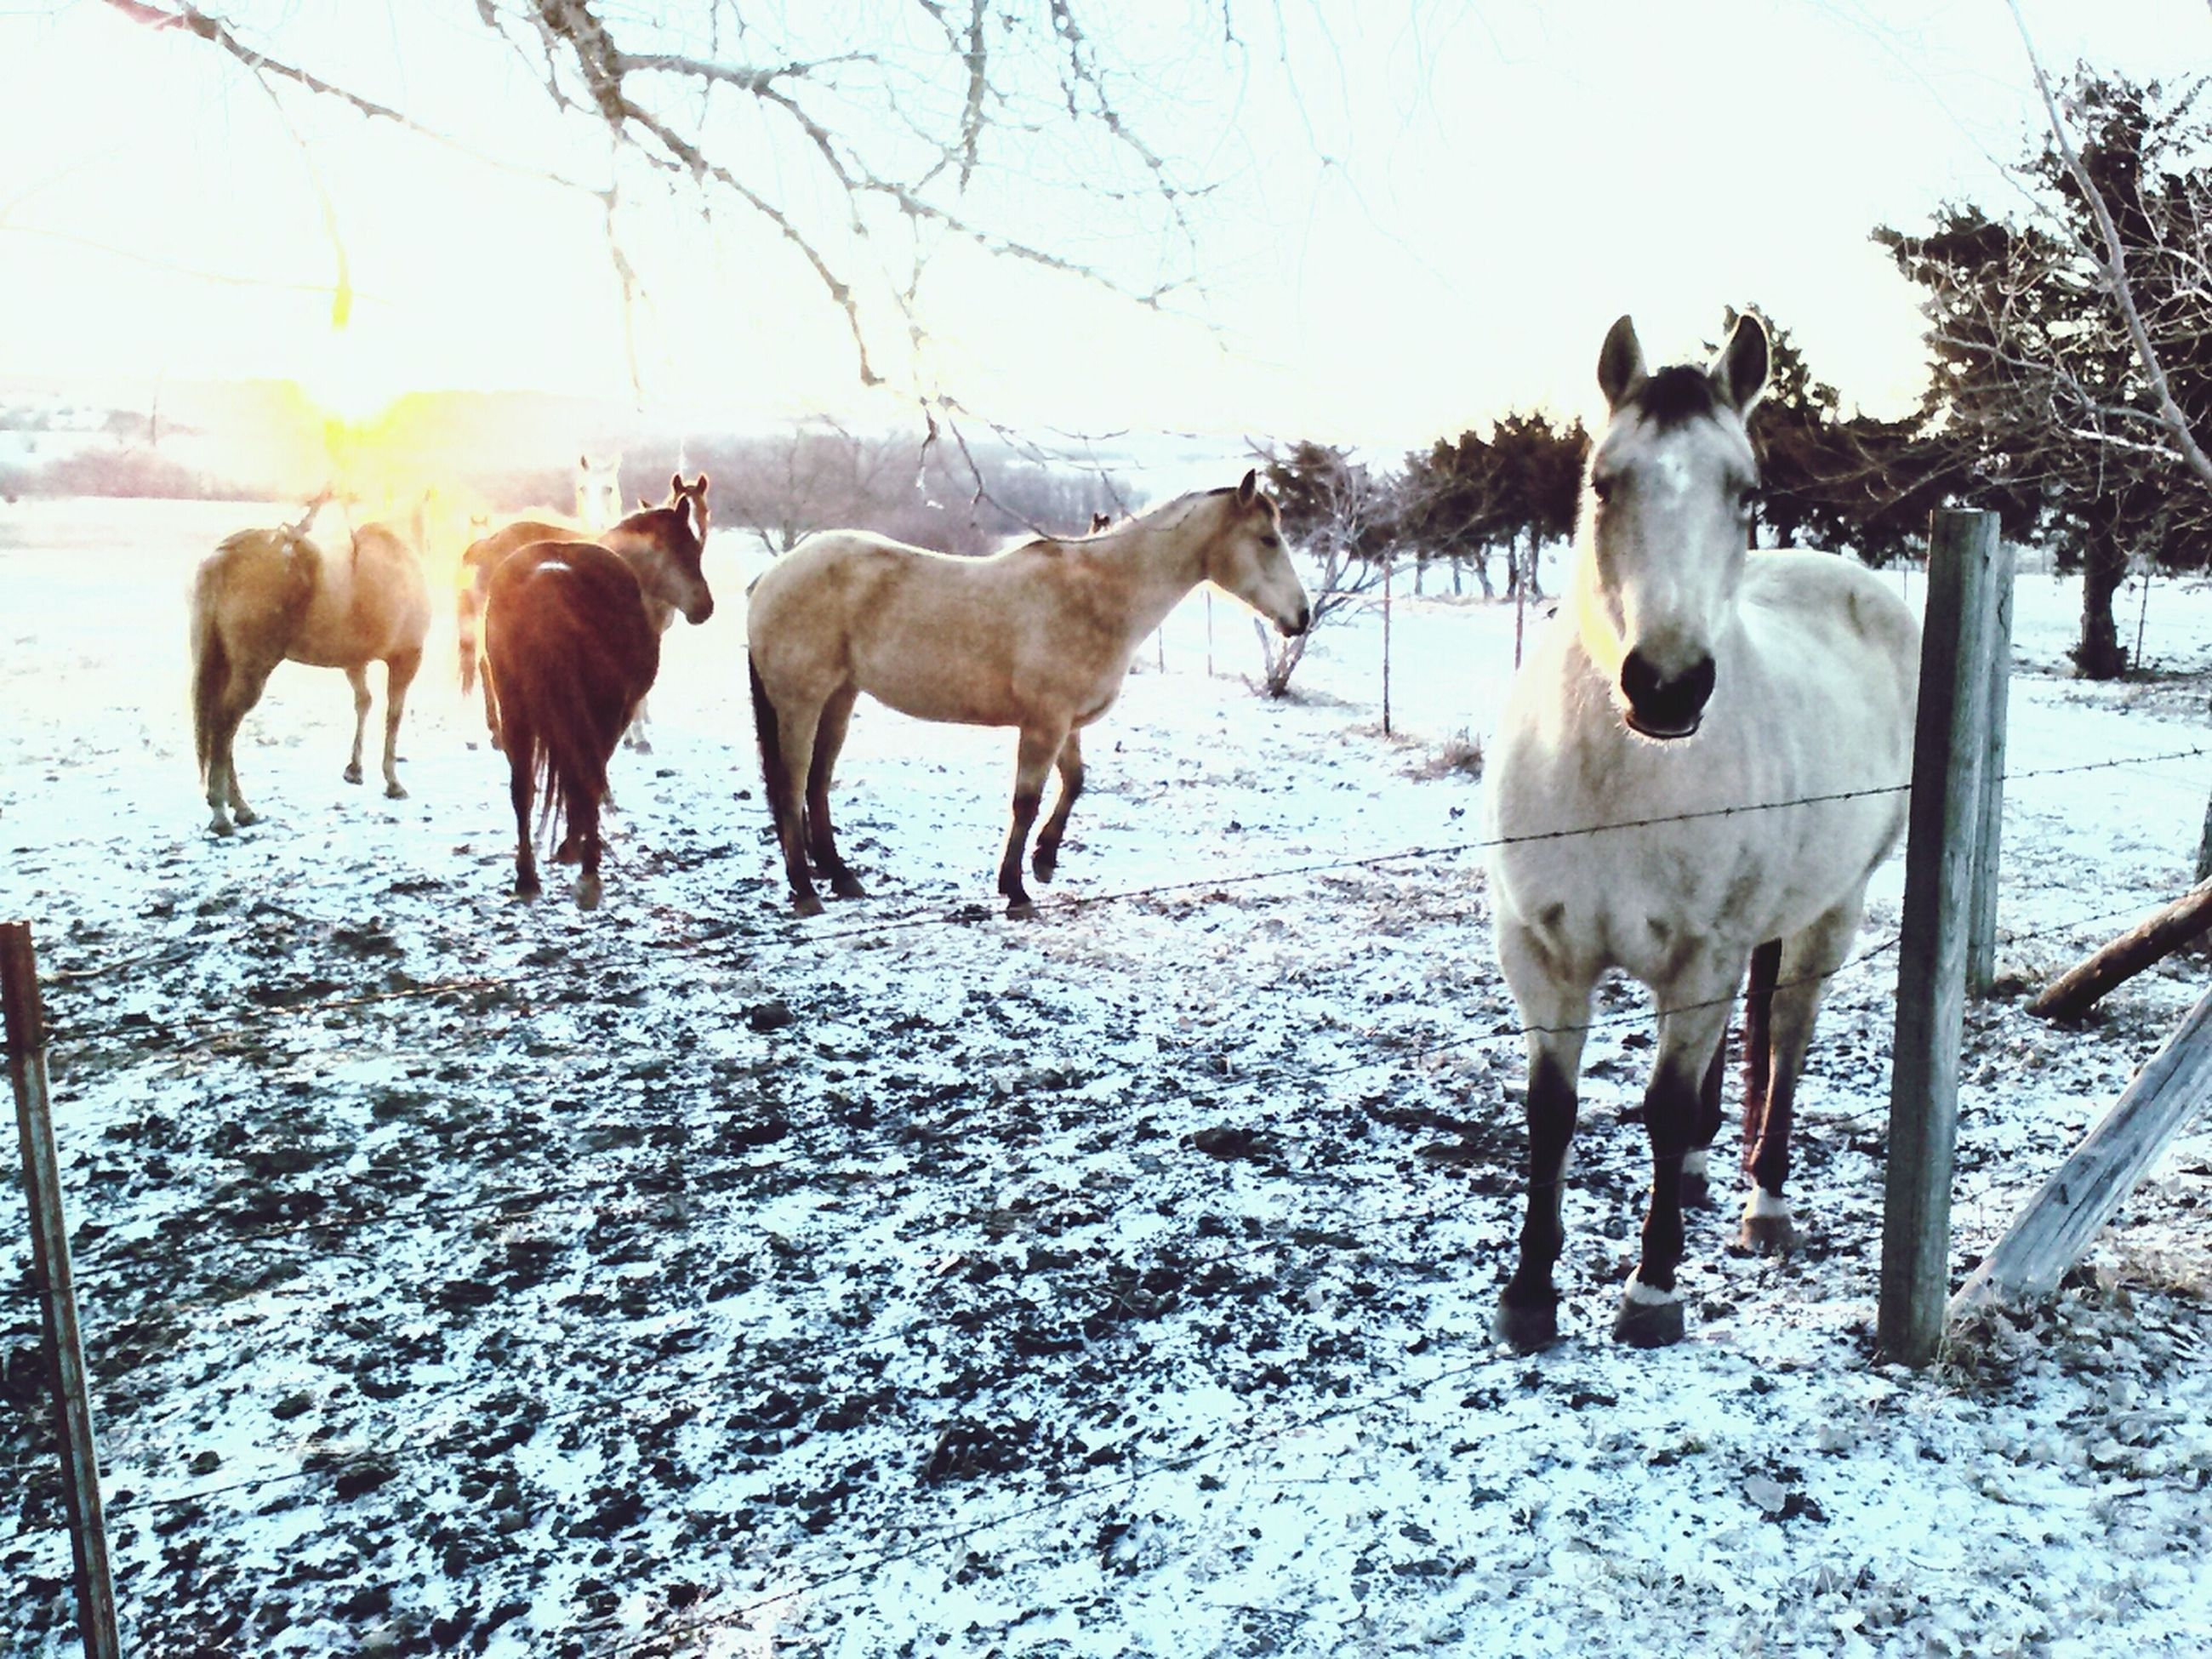 winter, snow, animal themes, cold temperature, domestic animals, season, livestock, white color, weather, tree, field, nature, mammal, horse, standing, landscape, covering, medium group of animals, herbivorous